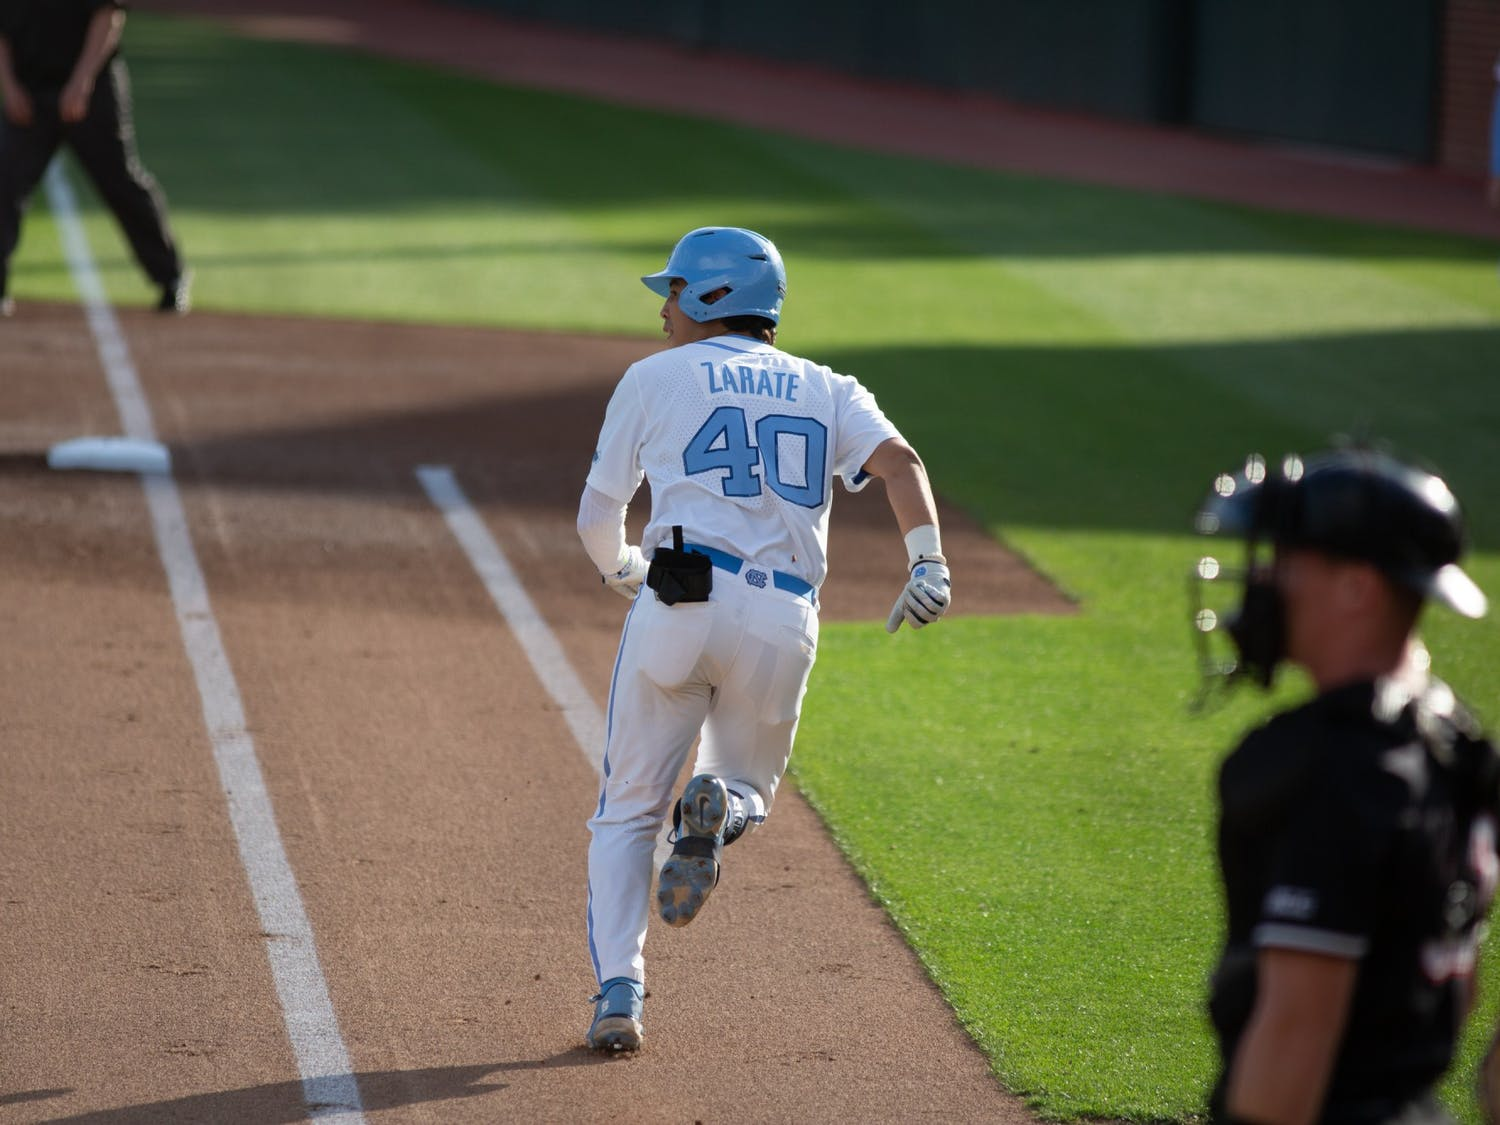 Redshirt sophomore Angel Zarate (40) approaches first base in a game against Louisville on Friday, May 14, 2021. The Tar Heels beat the Cardinals 5-1.